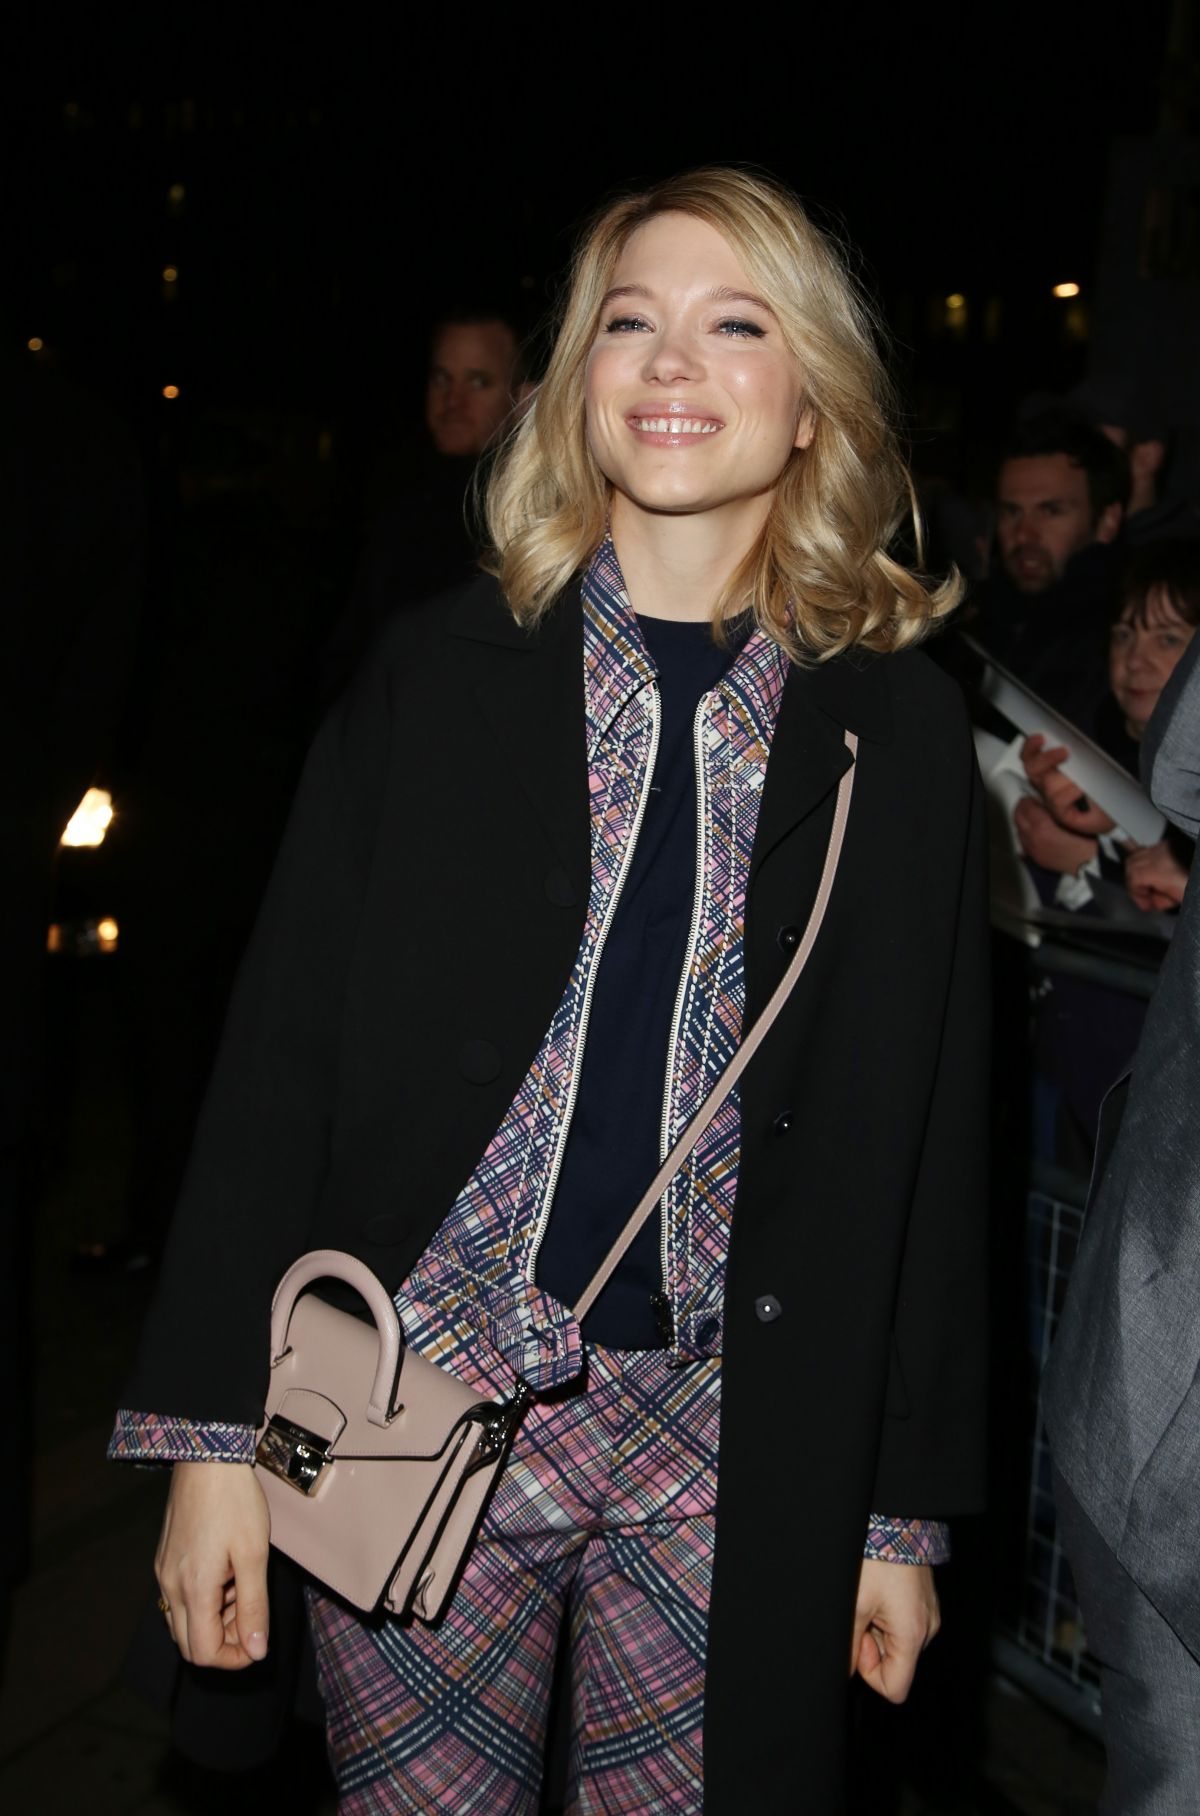 LEA SEYDOUX at Charles Finch and Chanel Pre-bafta Party in London